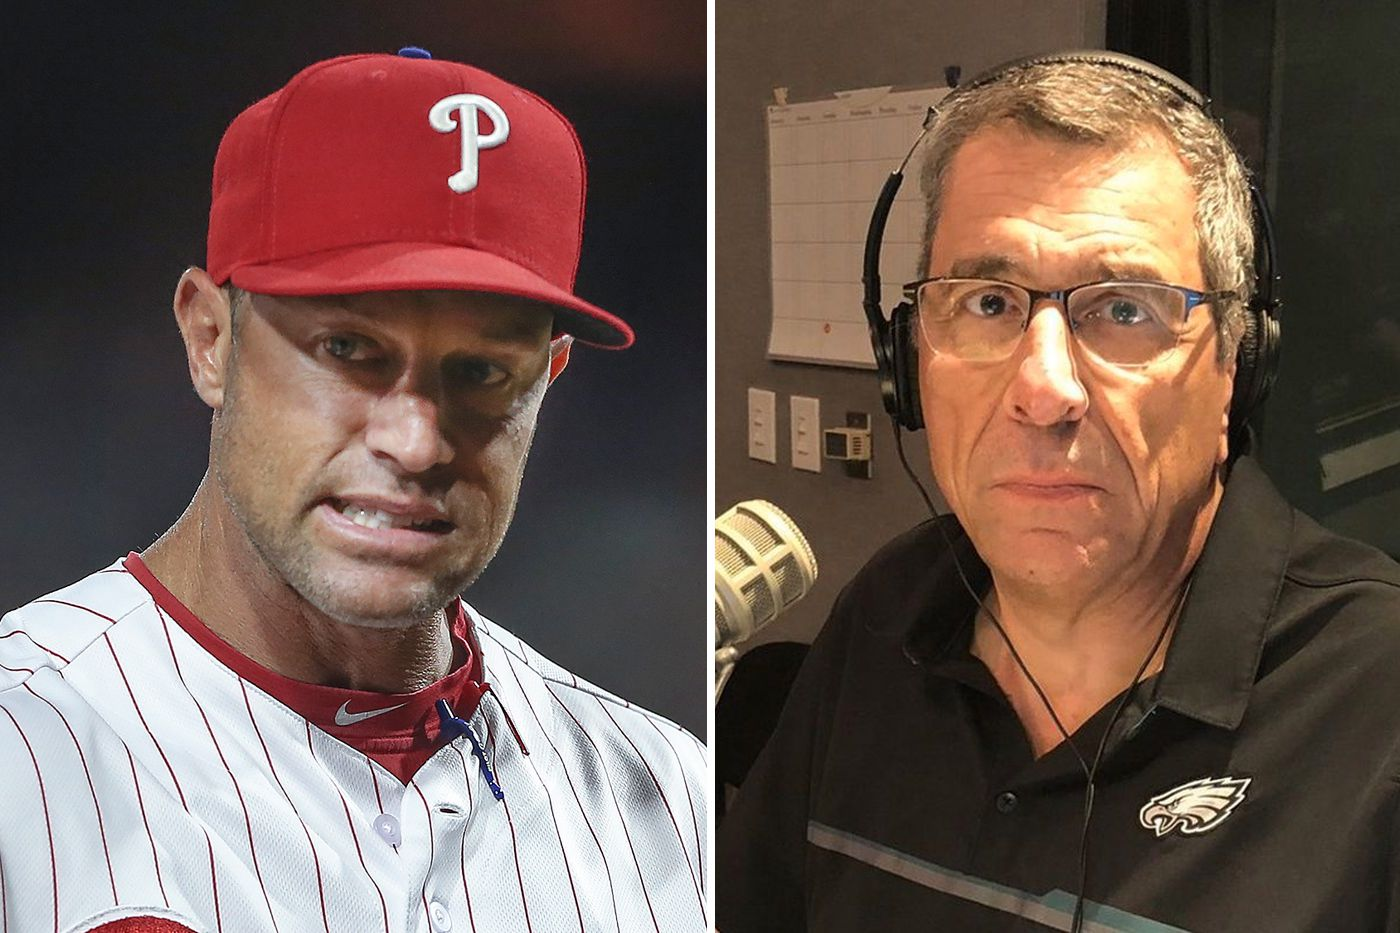 Phillies manager Gabe Kapler gets into fiery exchange with WIP's Angelo Cataldi over 'disrespectful' remarks